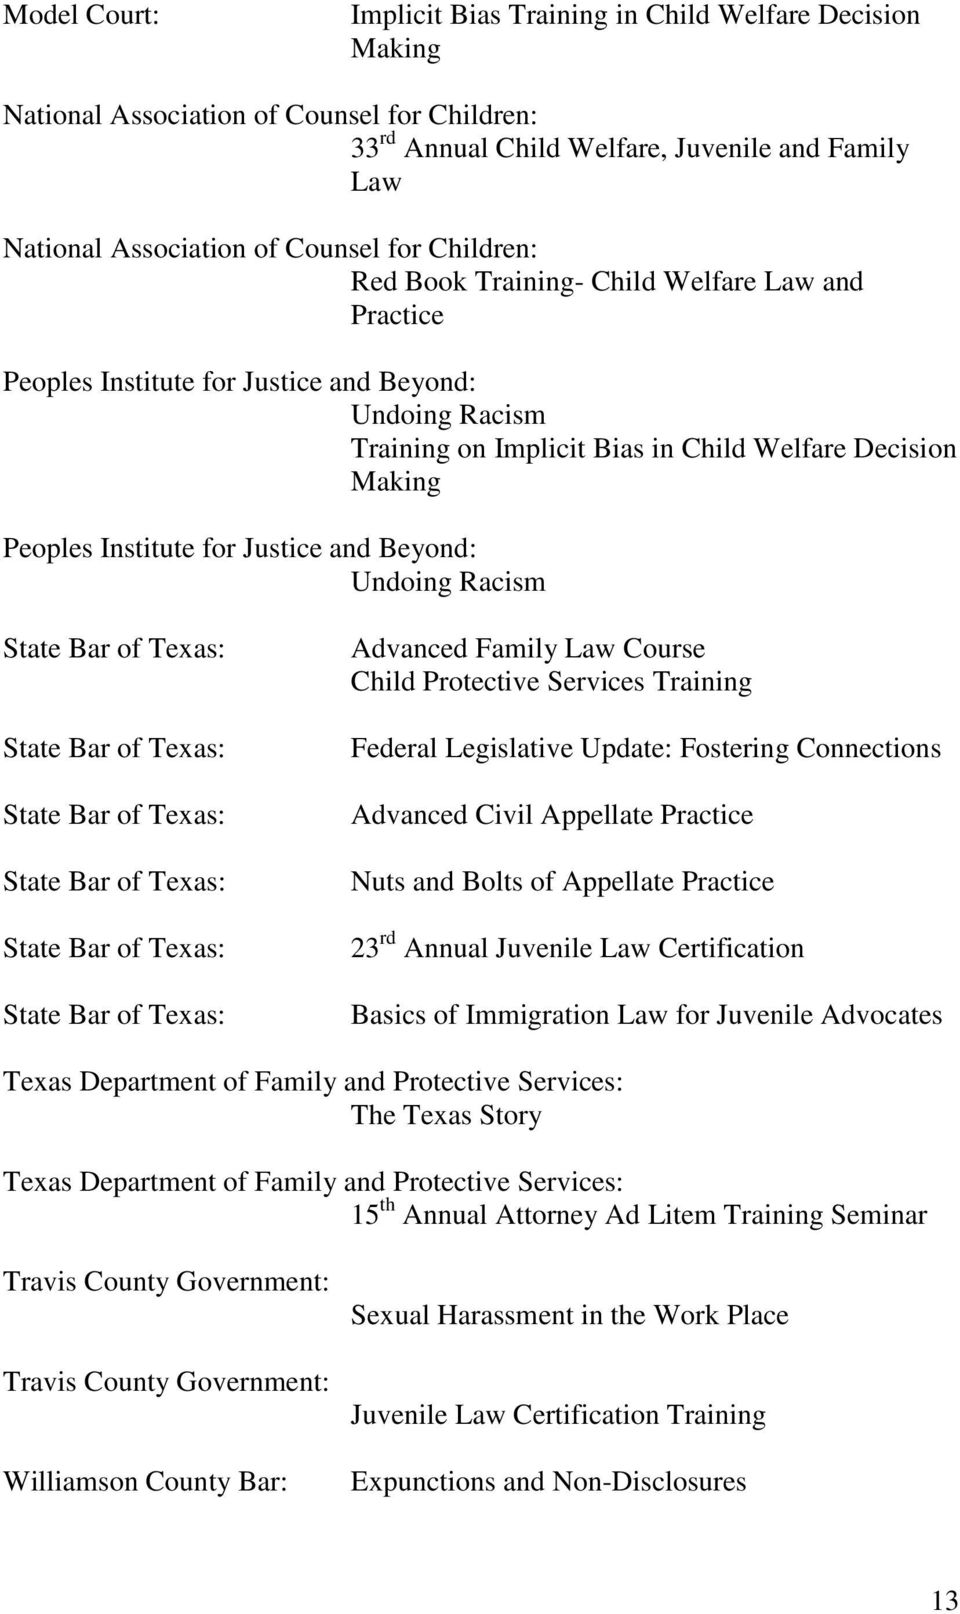 Bar of Texas: State Bar of Texas: State Bar of Texas: State Bar of Texas: Advanced Family Law Course Child Protective Services Training Federal Legislative Update: Fostering Connections Advanced